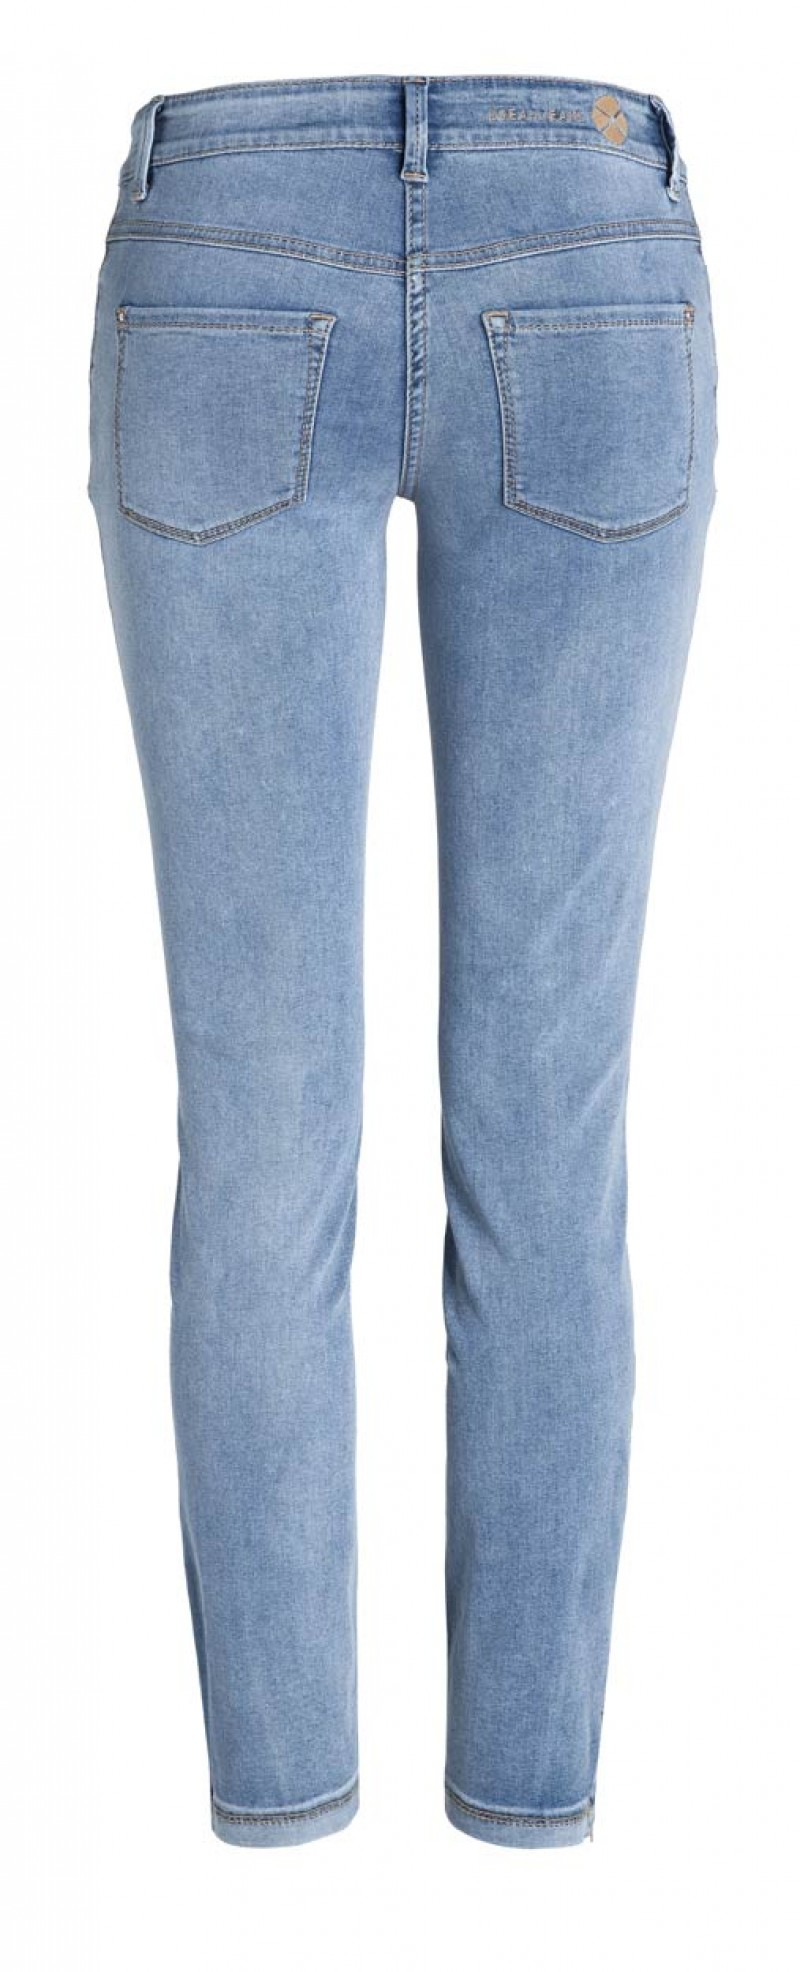 Mac Dream Summer Chic Jeans - Summer Feeling Wash